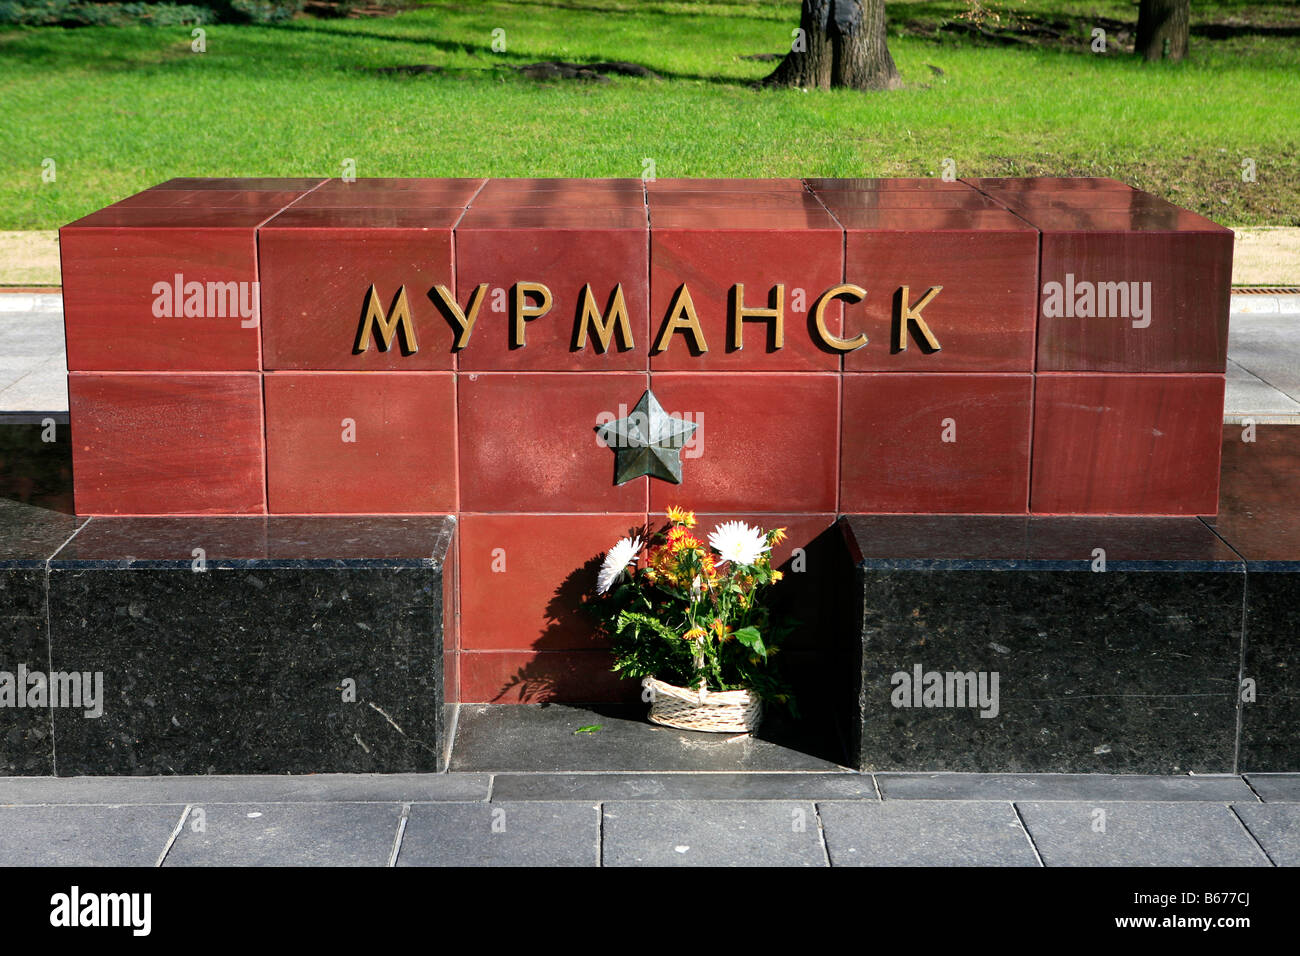 Memorial stone for World War II Hero City Murmansk near the Tomb of the Unknown Soldier in Alexander Garden, Moscow, - Stock Image